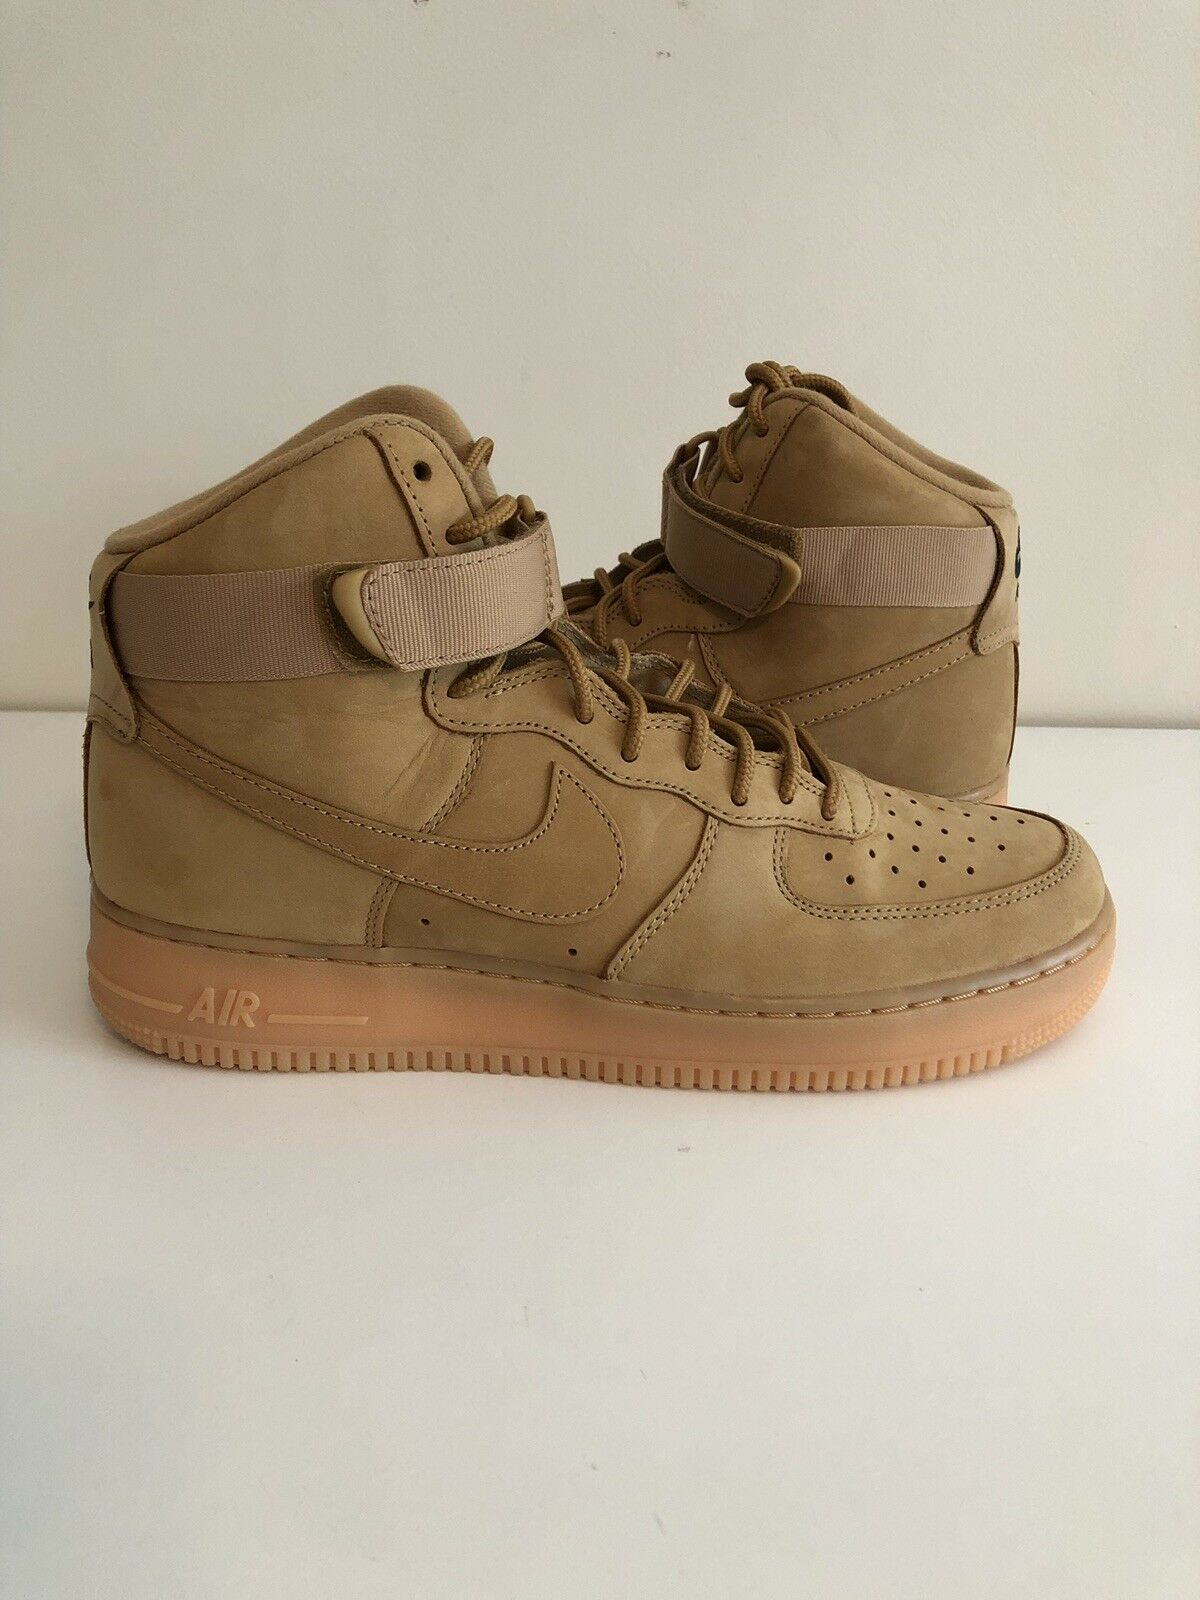 Nike Air Force 1 Mid Flax Wheat Size 10 Tan '07  DS